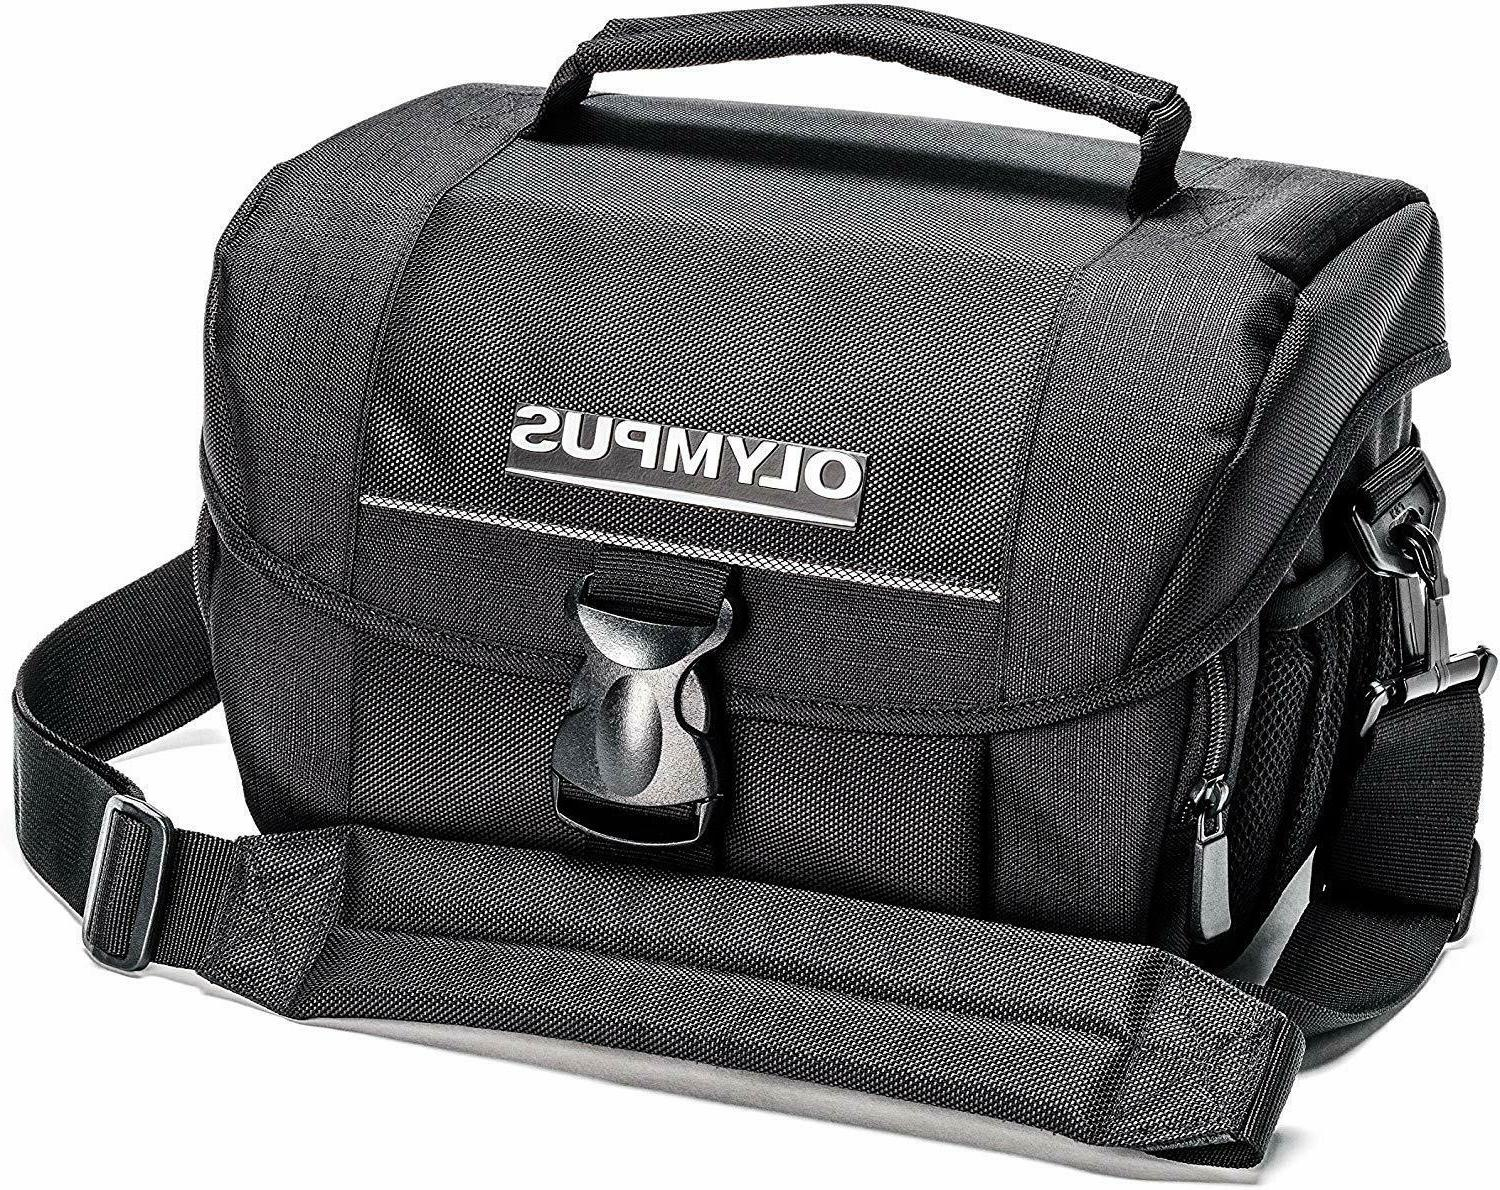 Olympus System Bag Holds and